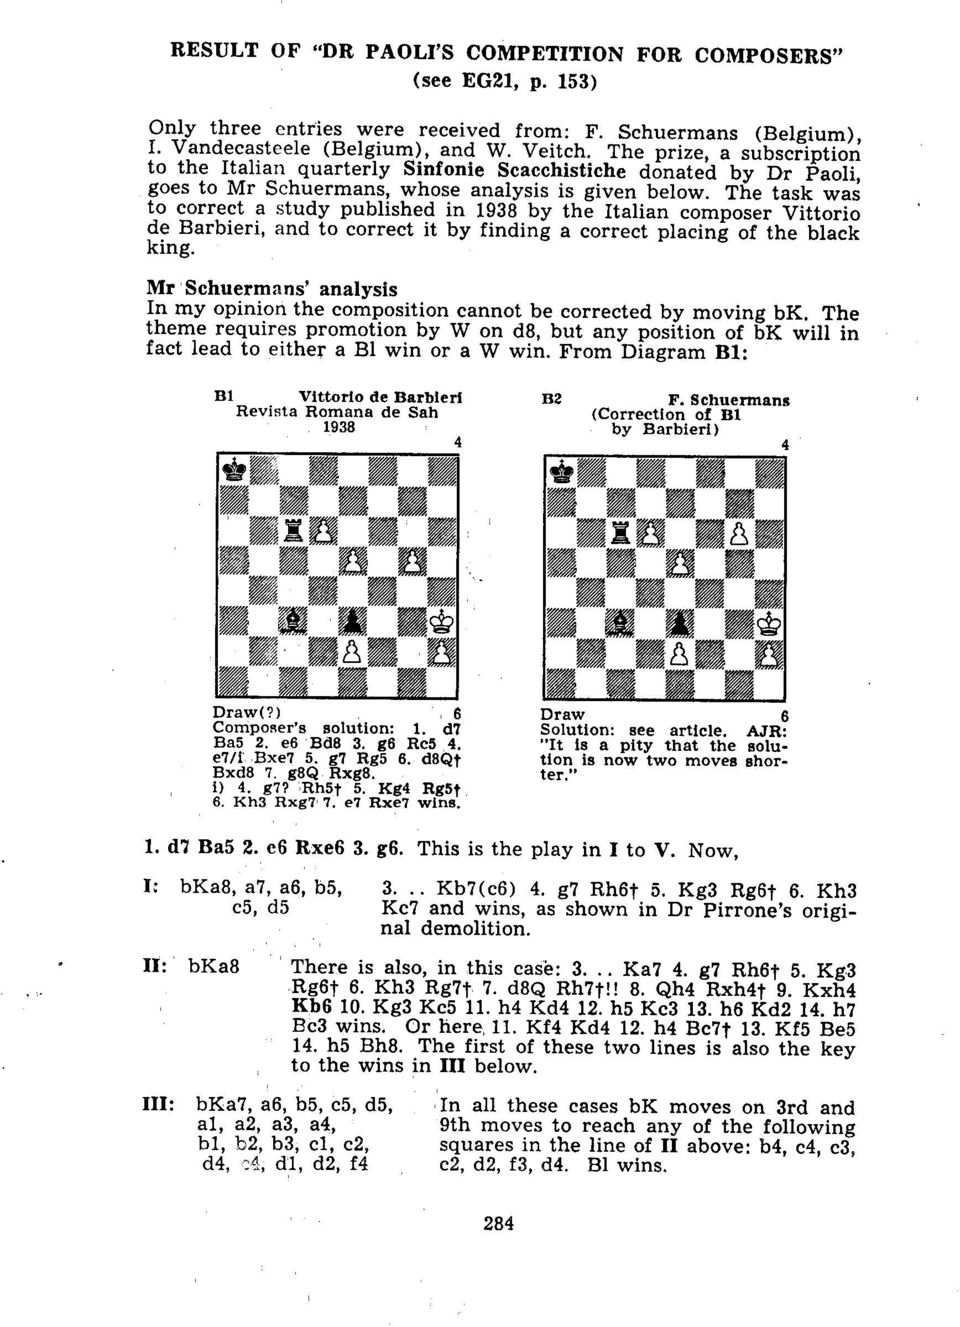 The task was to correct a study published in 1938 by the Italian composer Vittorio de Barbieri, and to correct it by finding a correct placing of the black king.